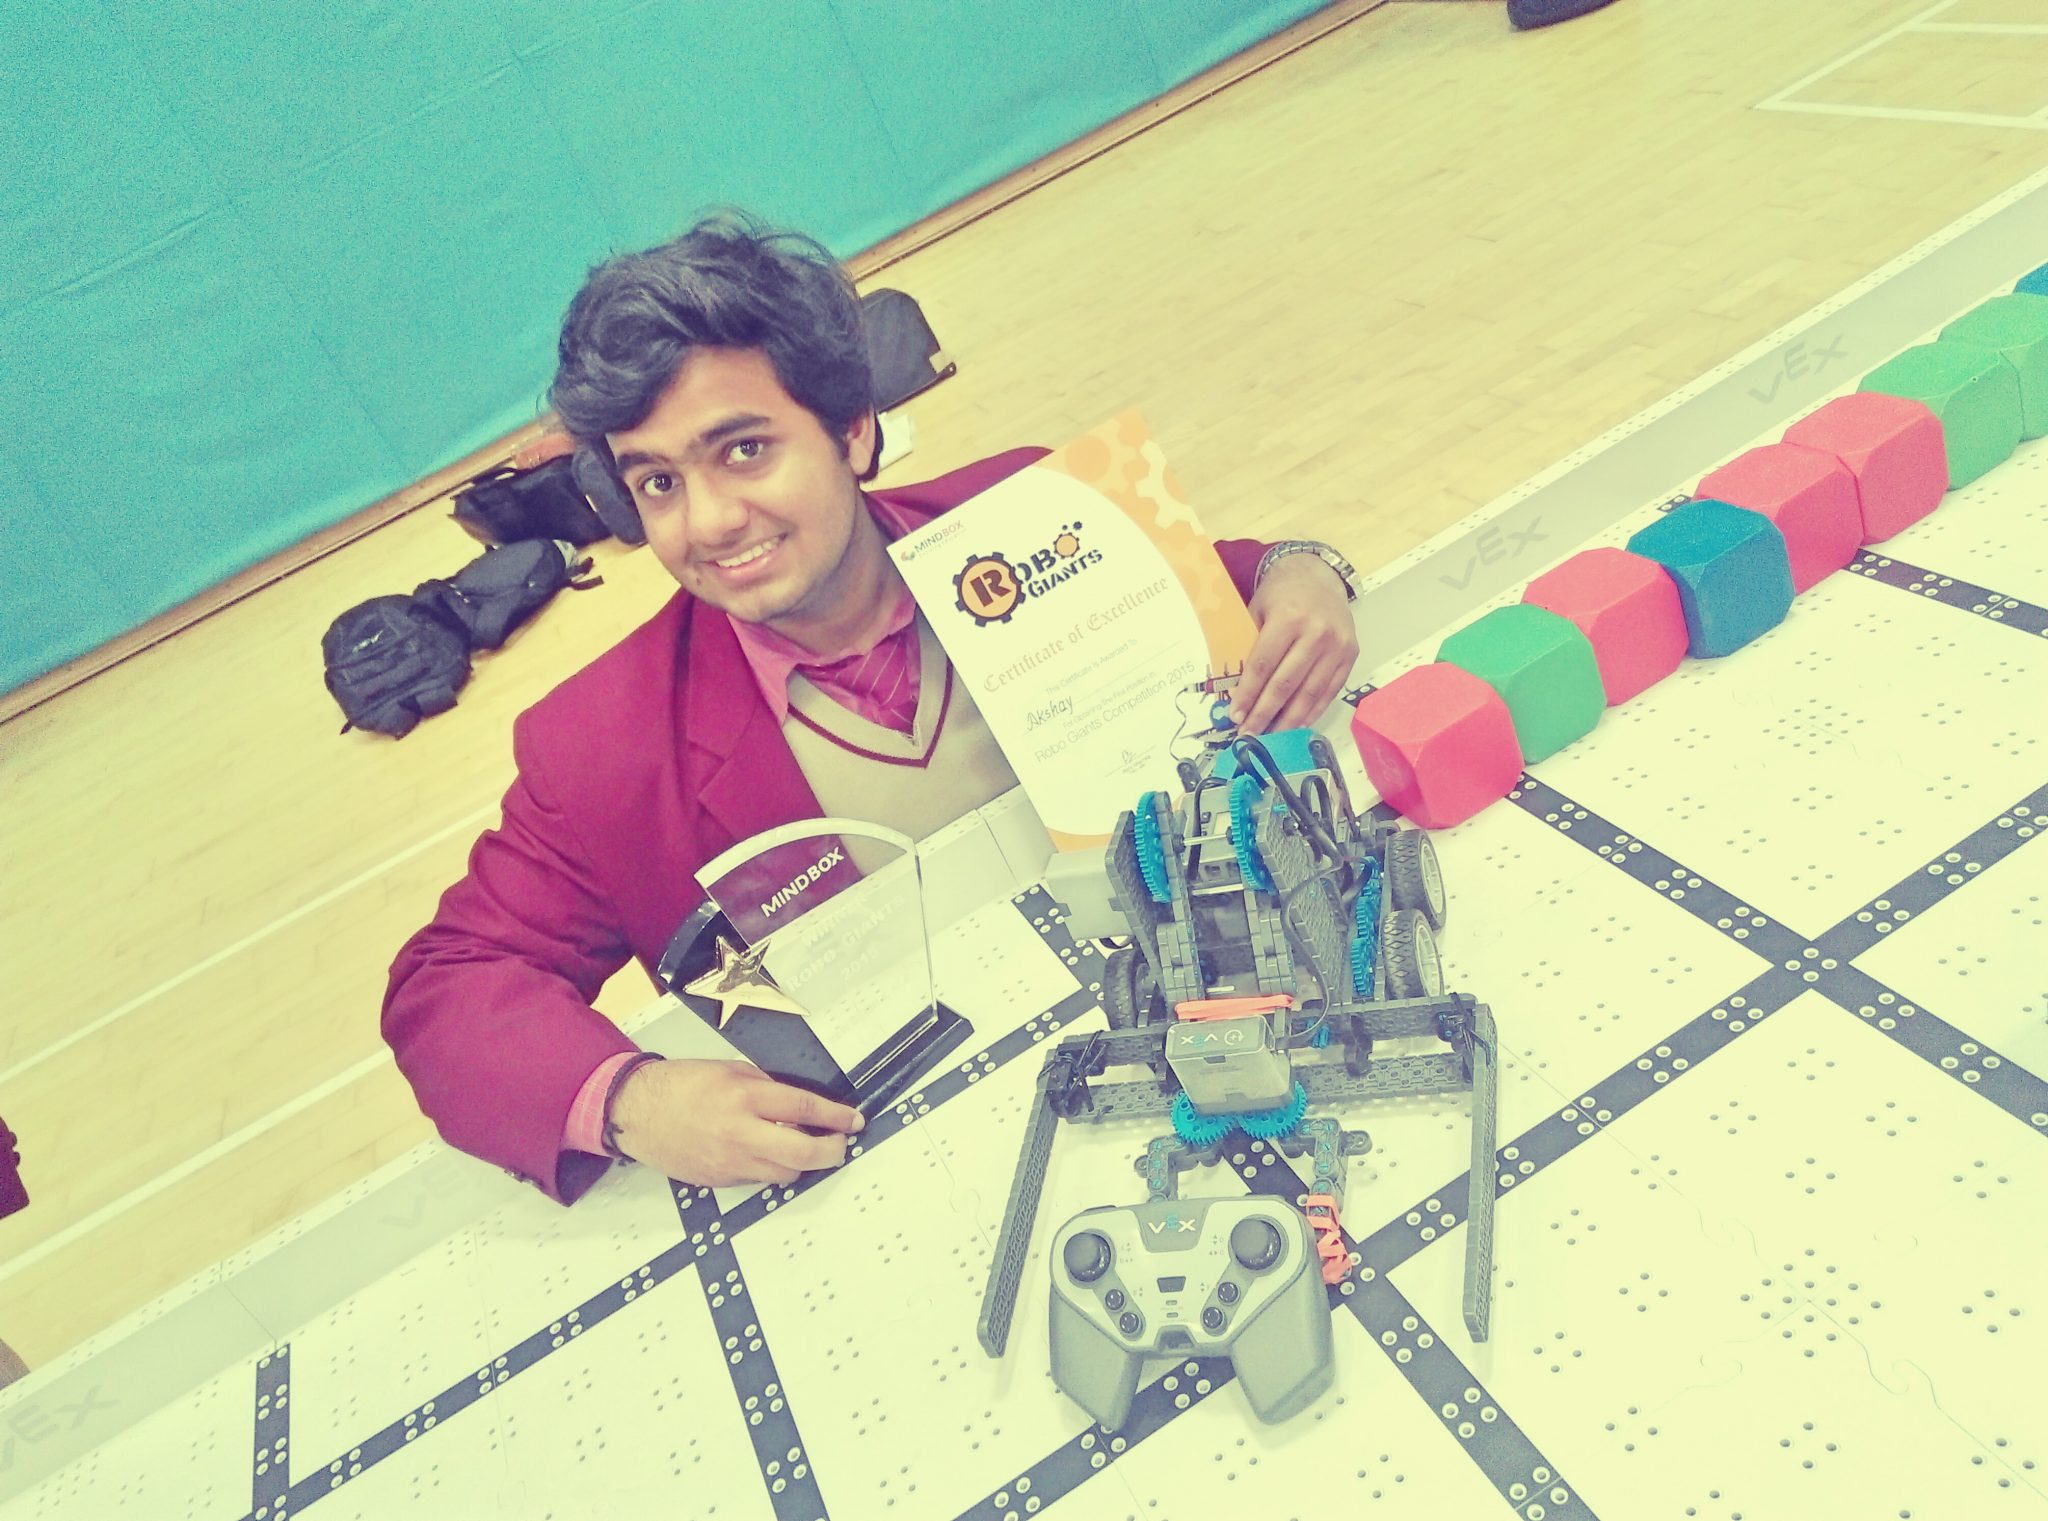 Robot that can talk and pick up object built by a 11th grader